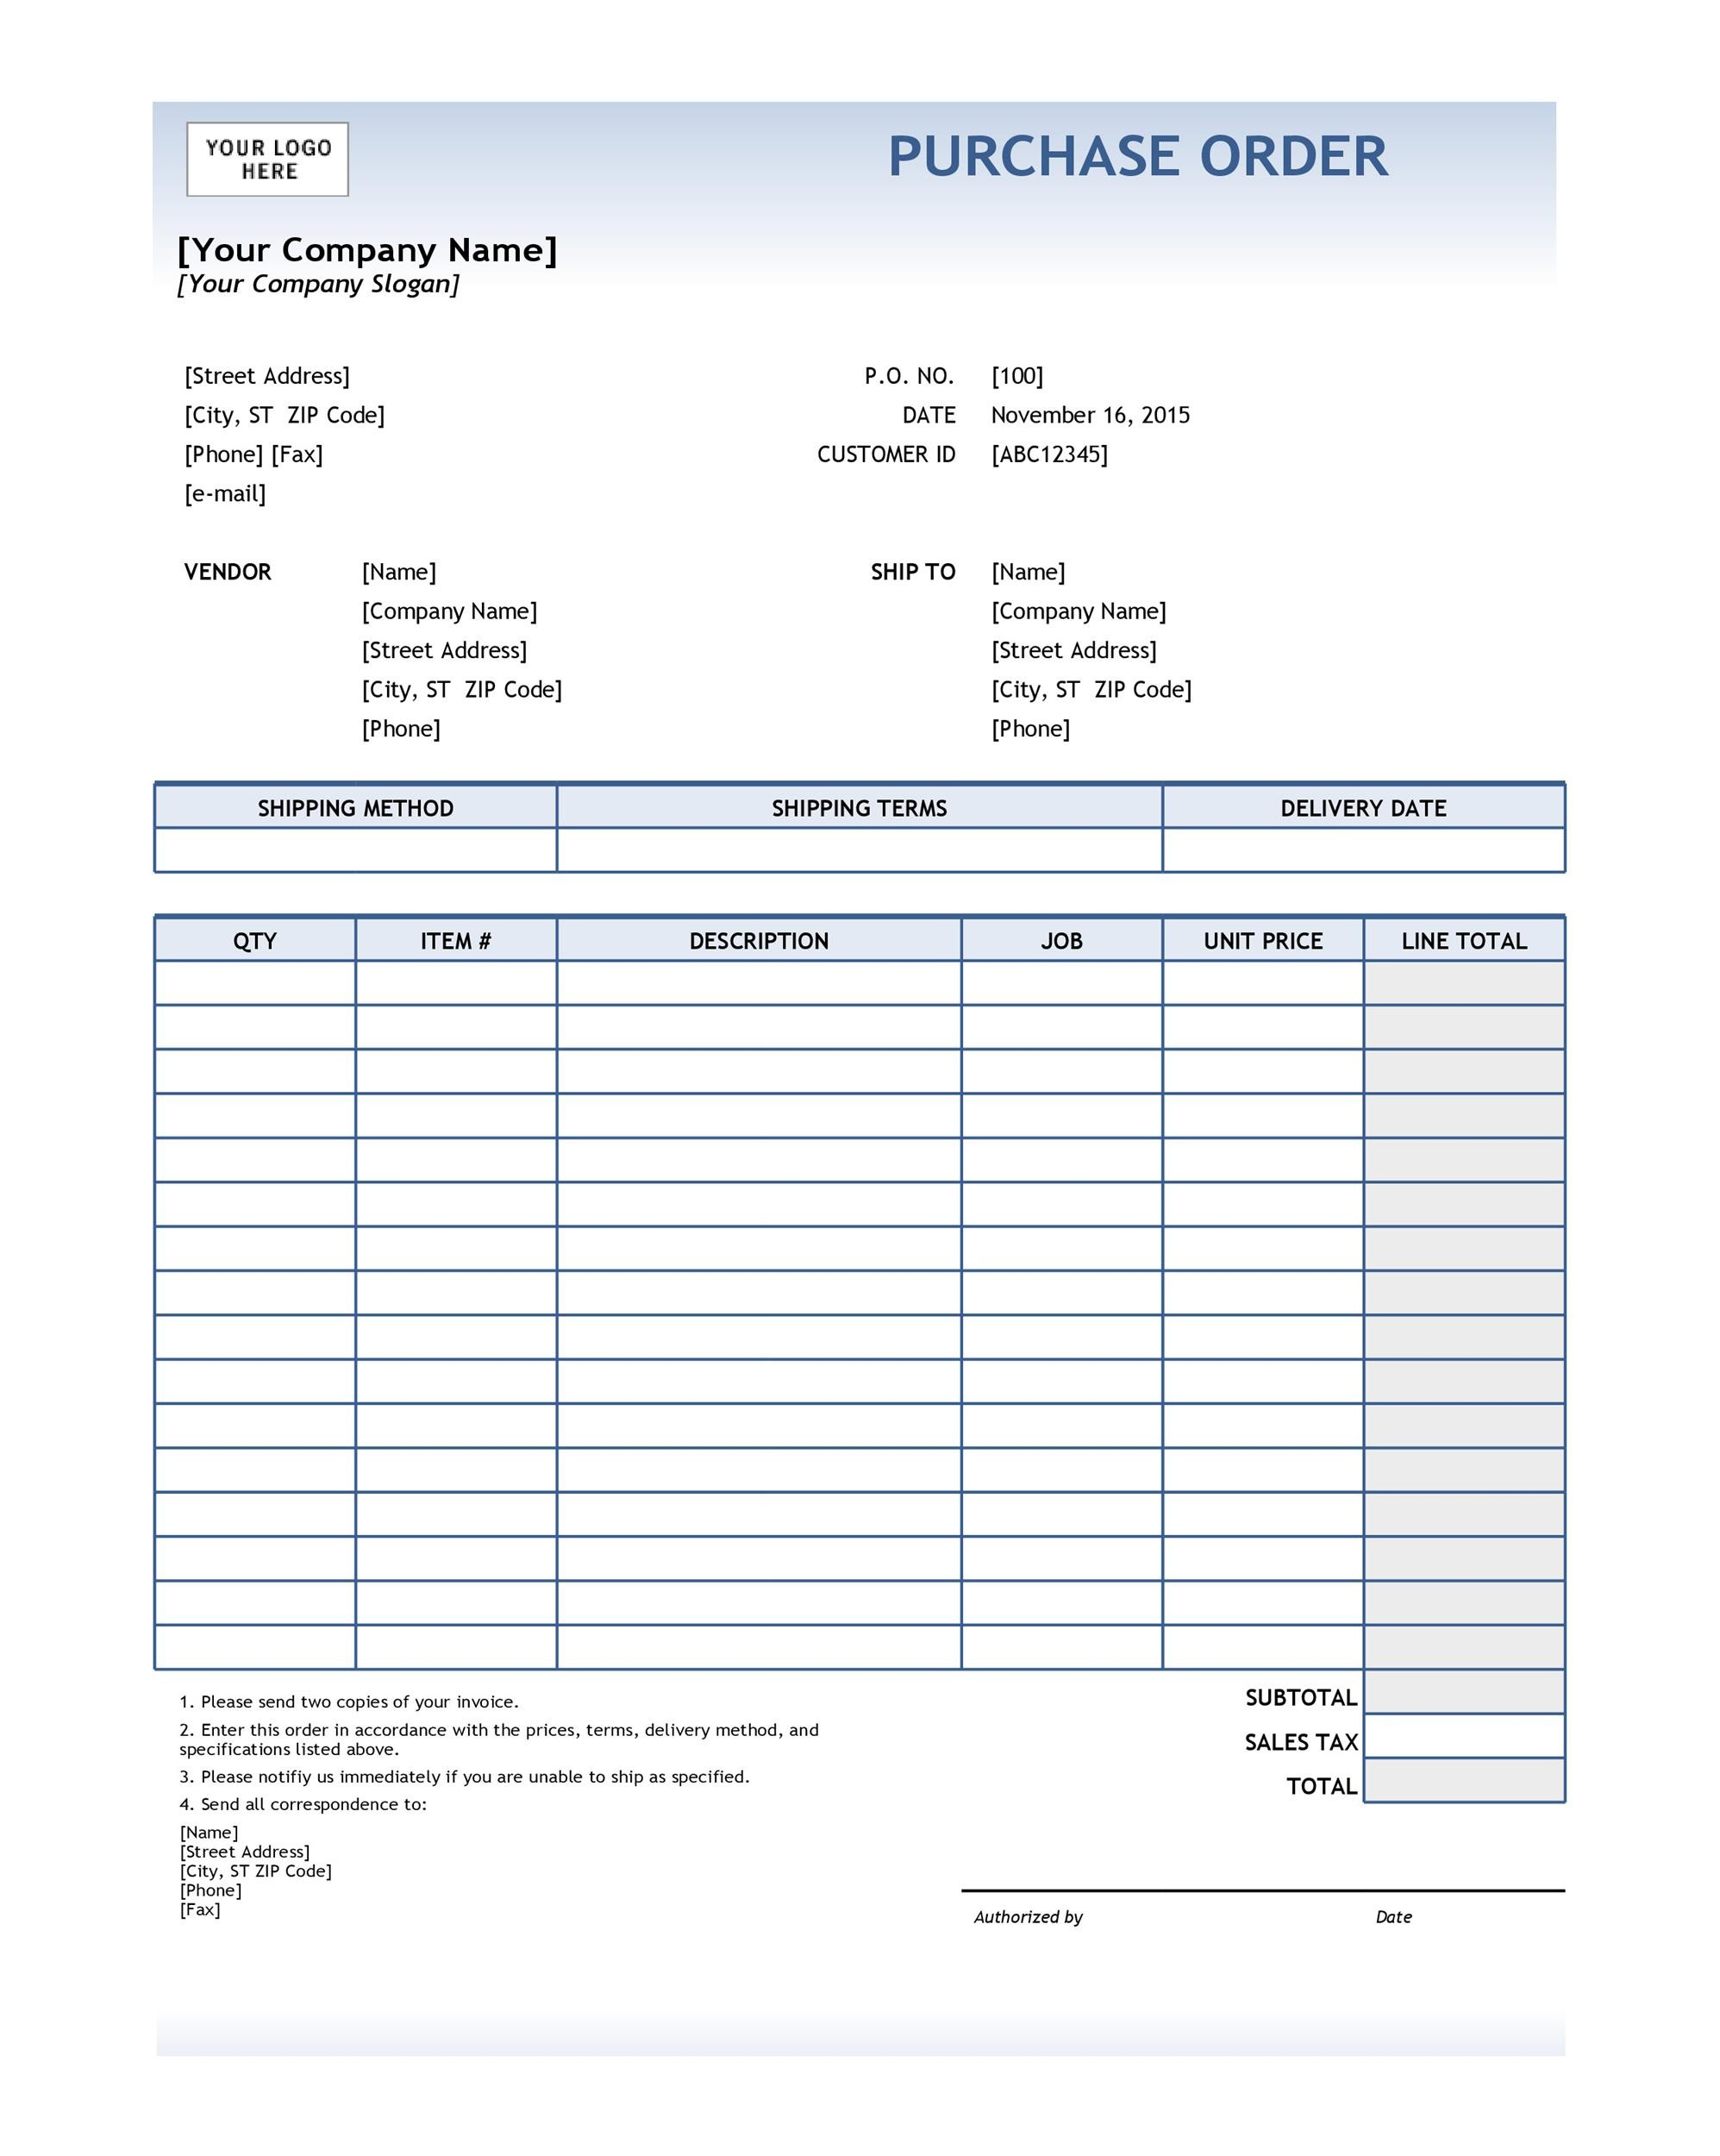 purchase order template excel free download  37 Free Purchase Order Templates in Word